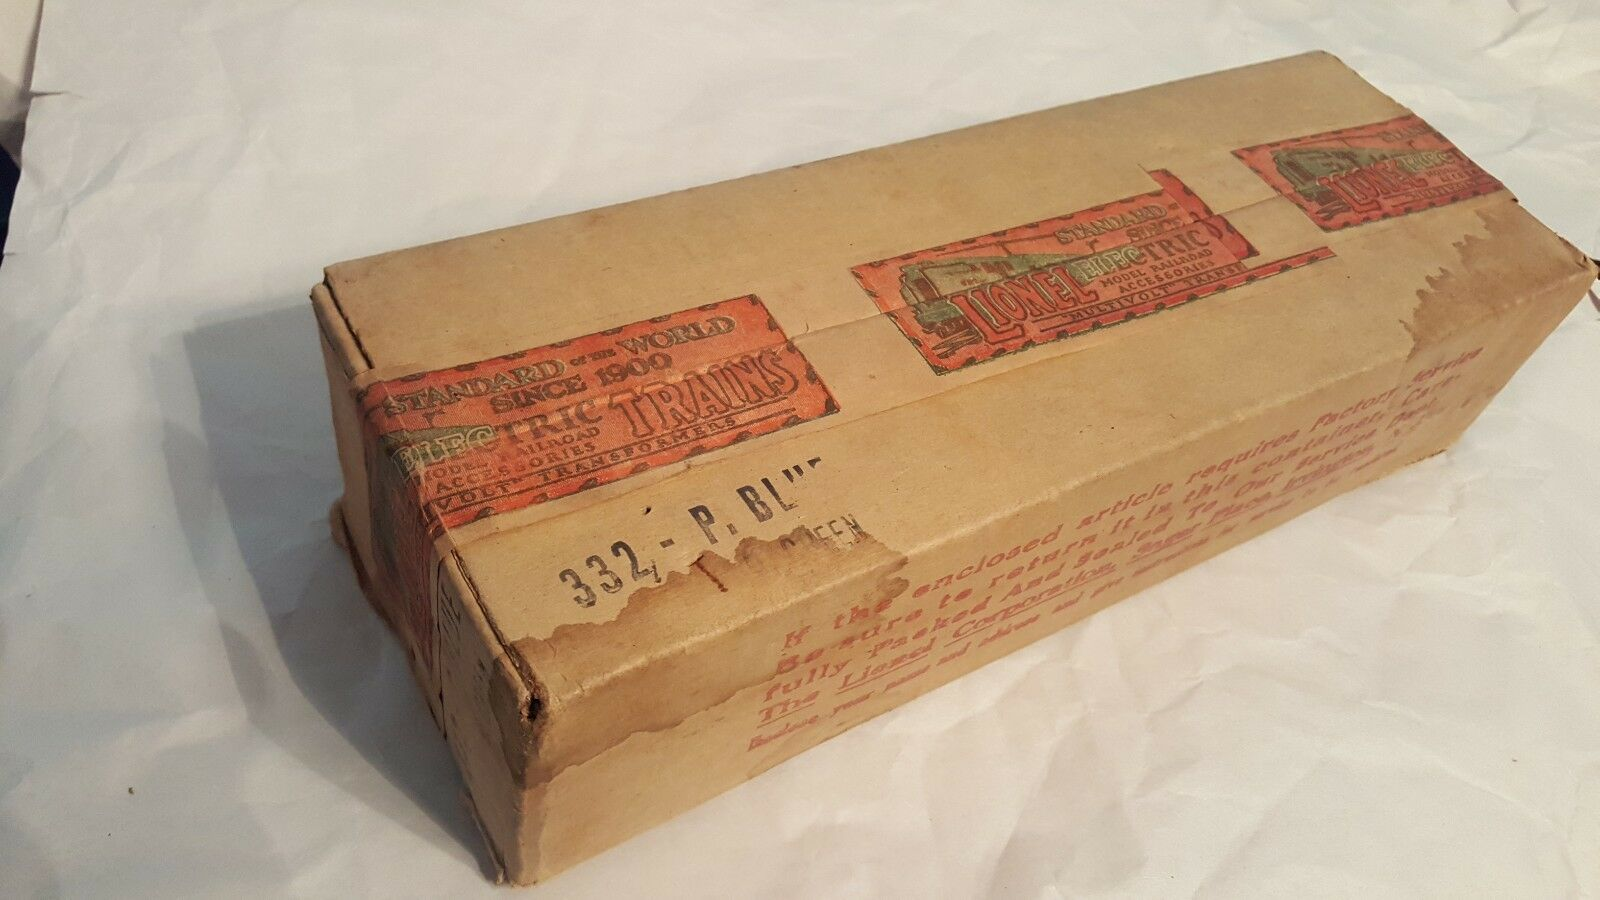 1930 332 P. blueE D GREEN Passenger car Box only